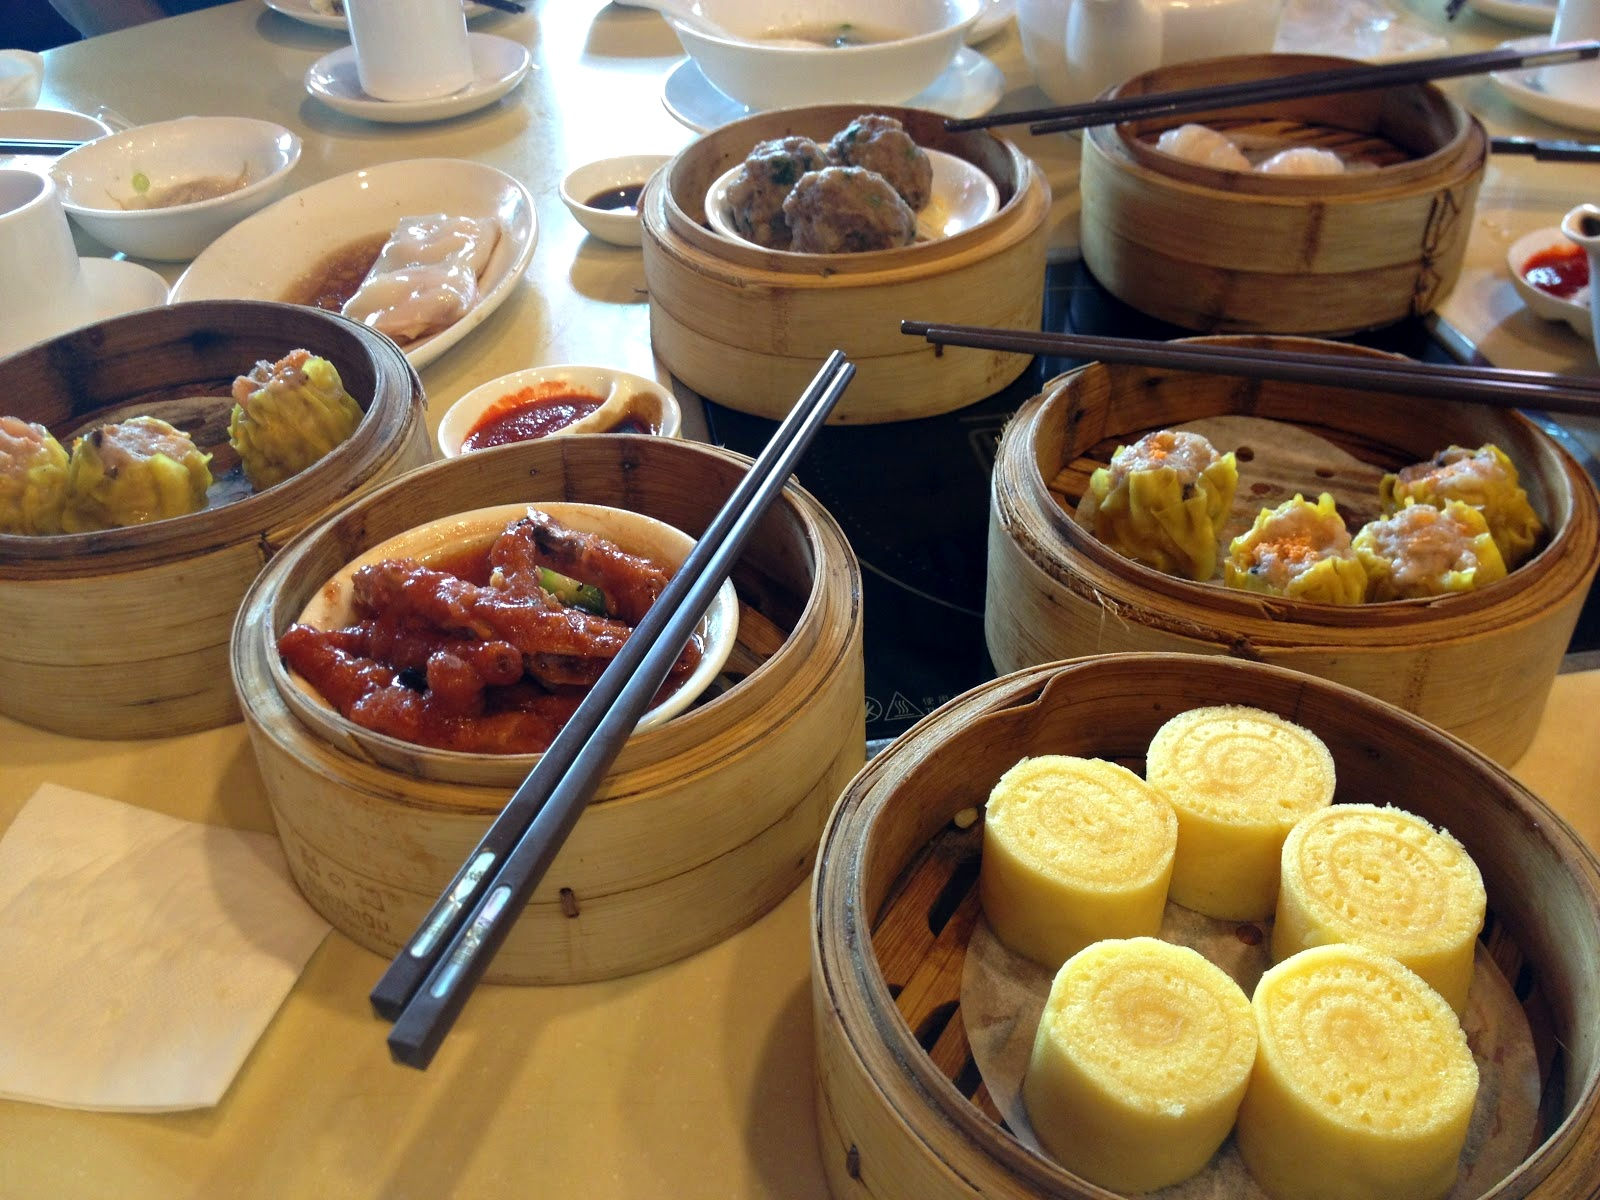 Dim sum spread at MingHin Cuisine